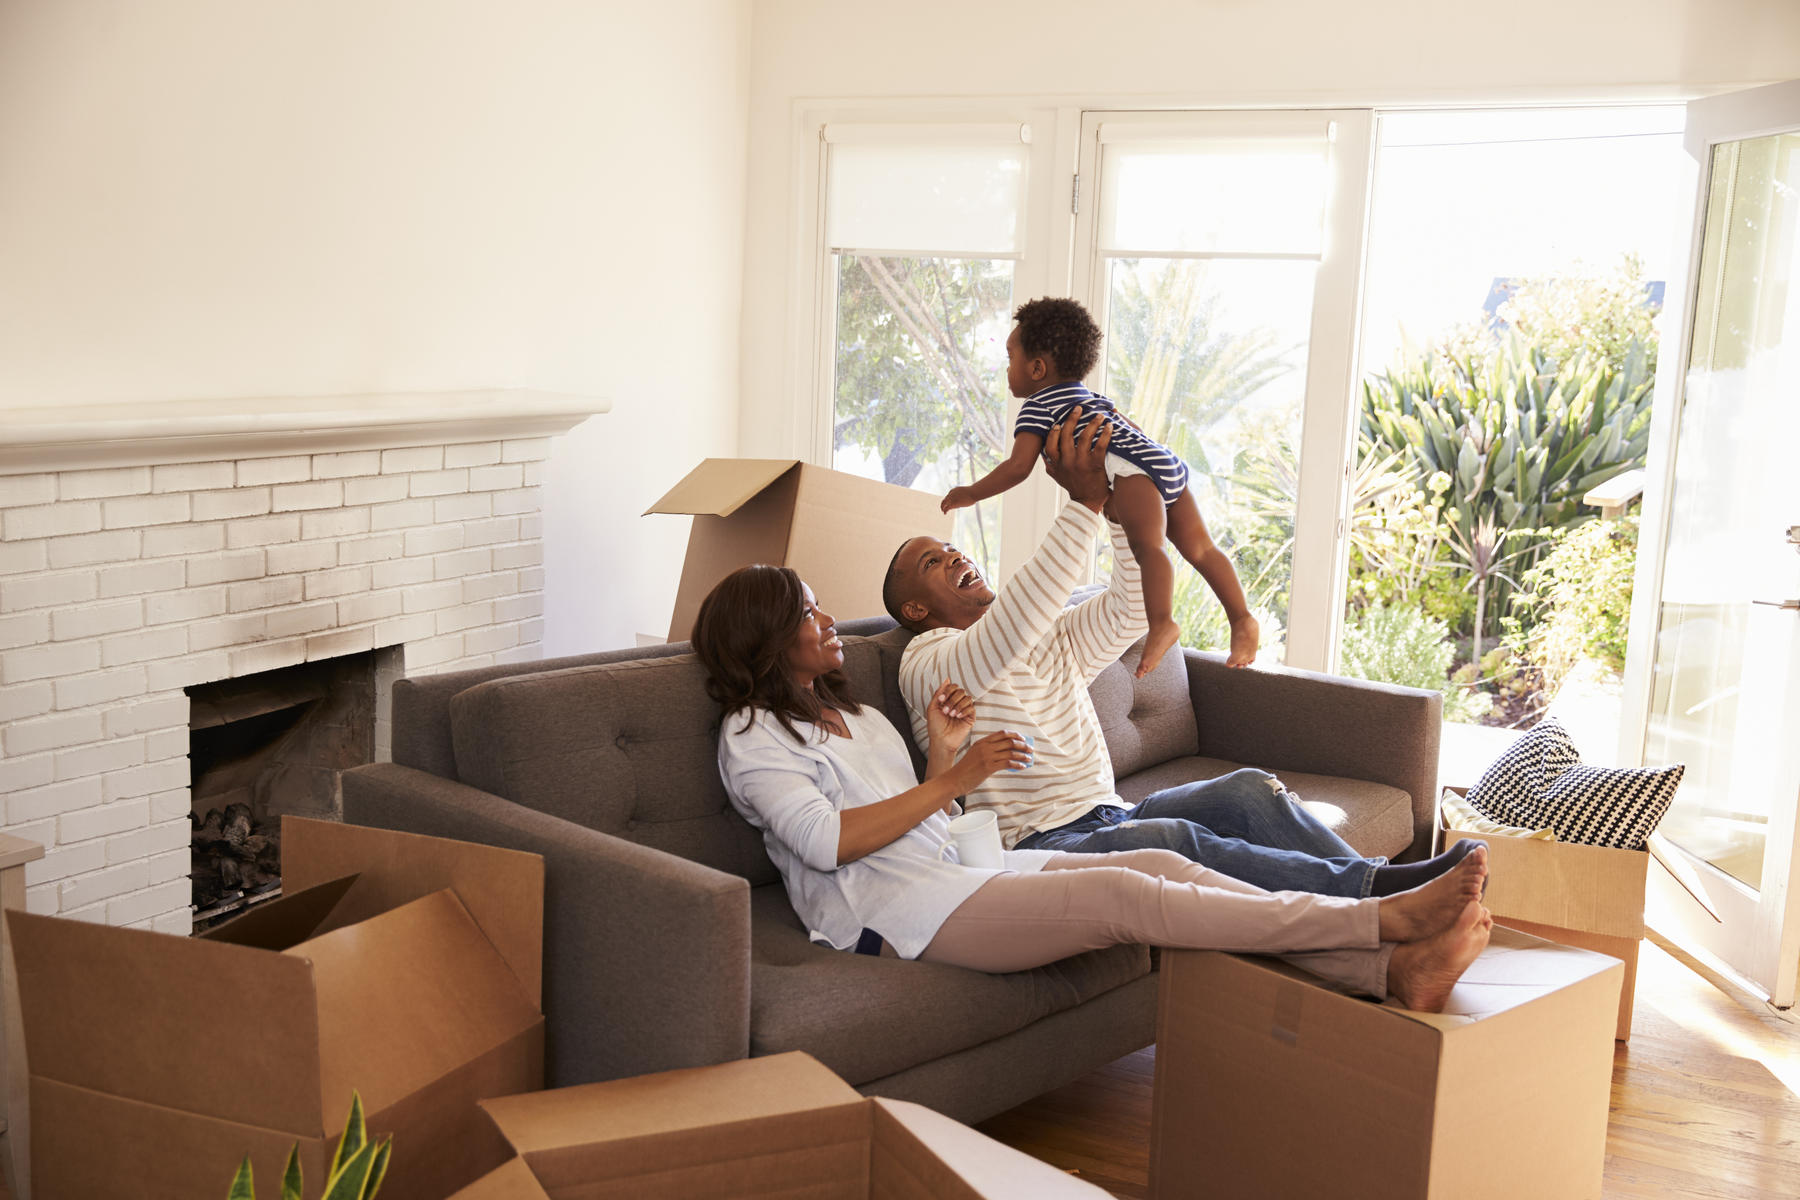 Family Moving Lays On Couch Surrounded With Boxes